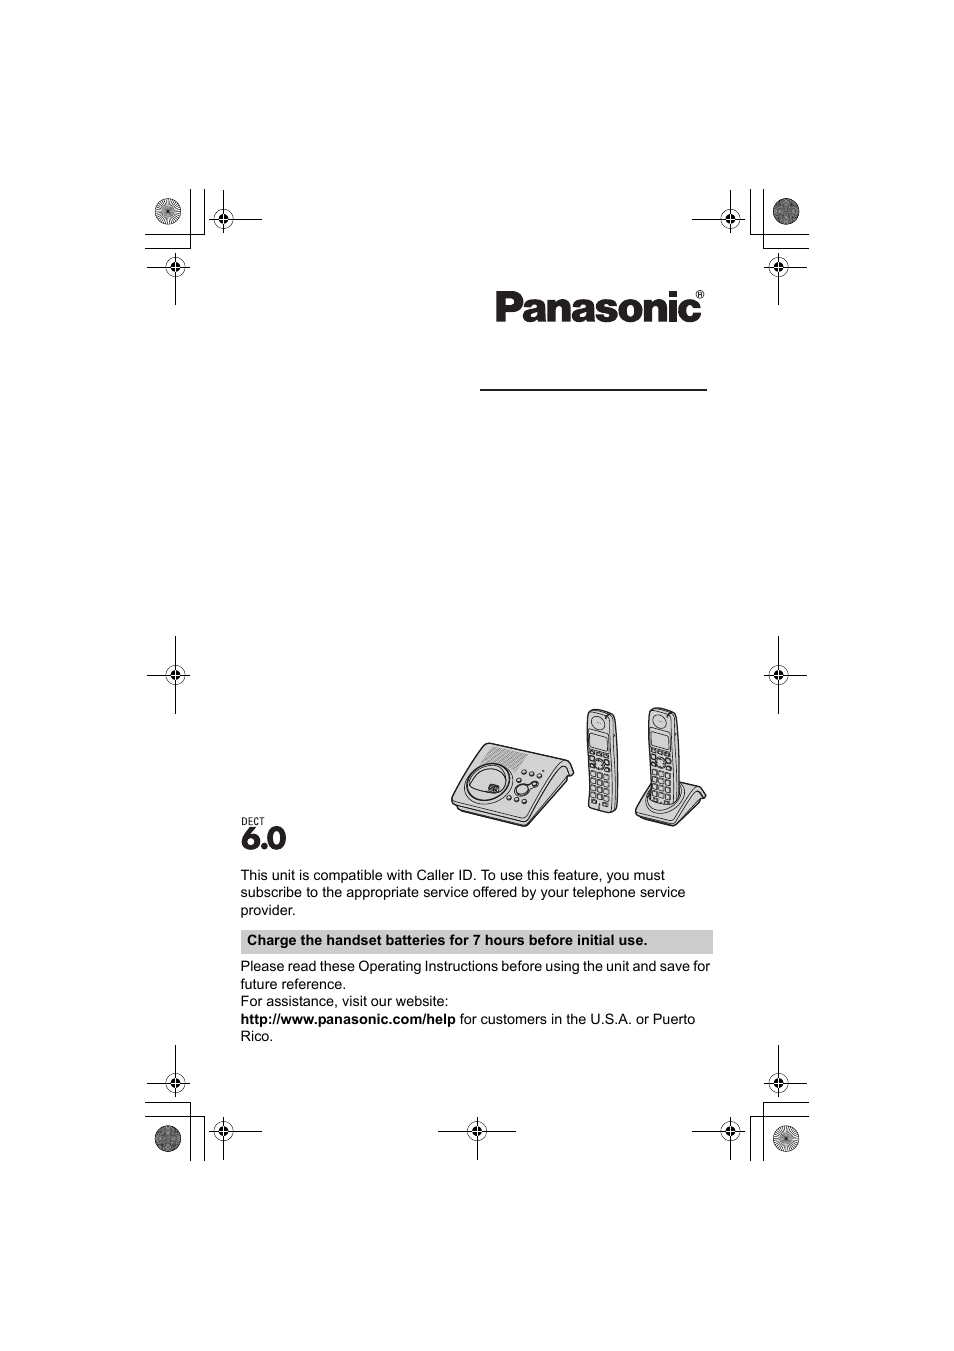 Panasonic KX-TG1034 User Manual | 52 pages | Also for: KX